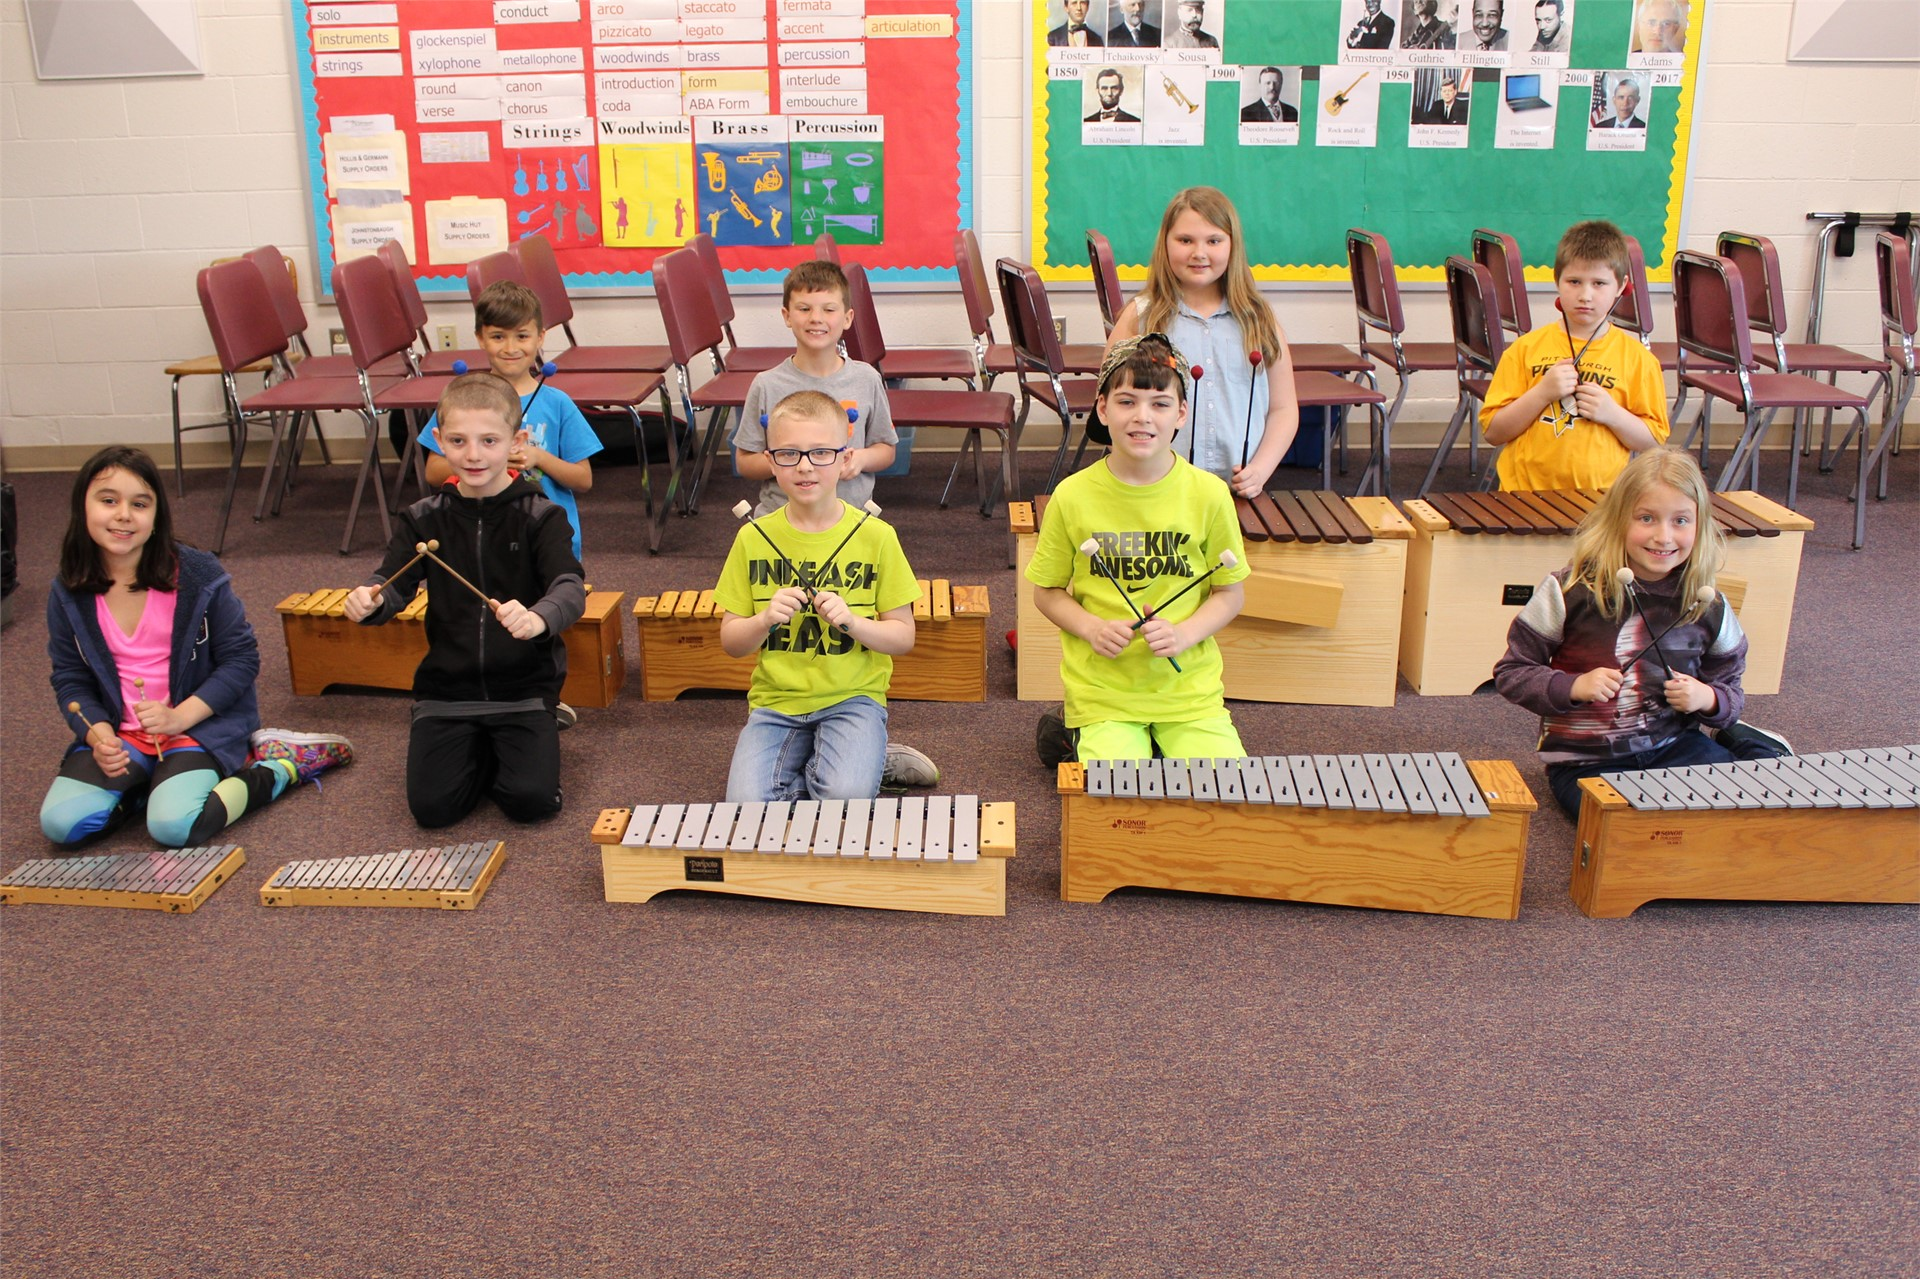 Music students provide musical accompaniment to a play performed for kindergarten students